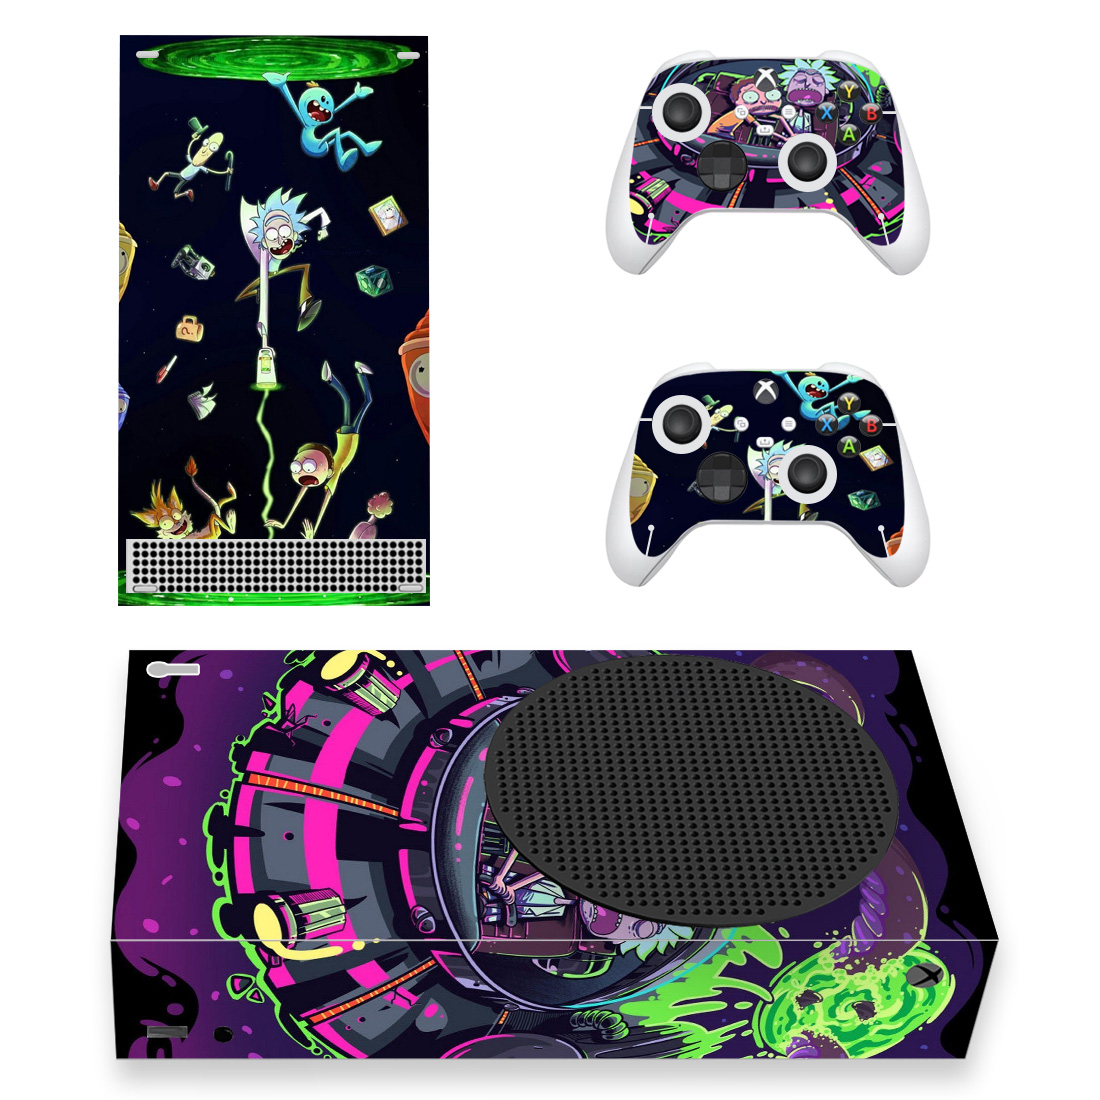 Rick And Morty Xbox Series S Skin Sticker Decal